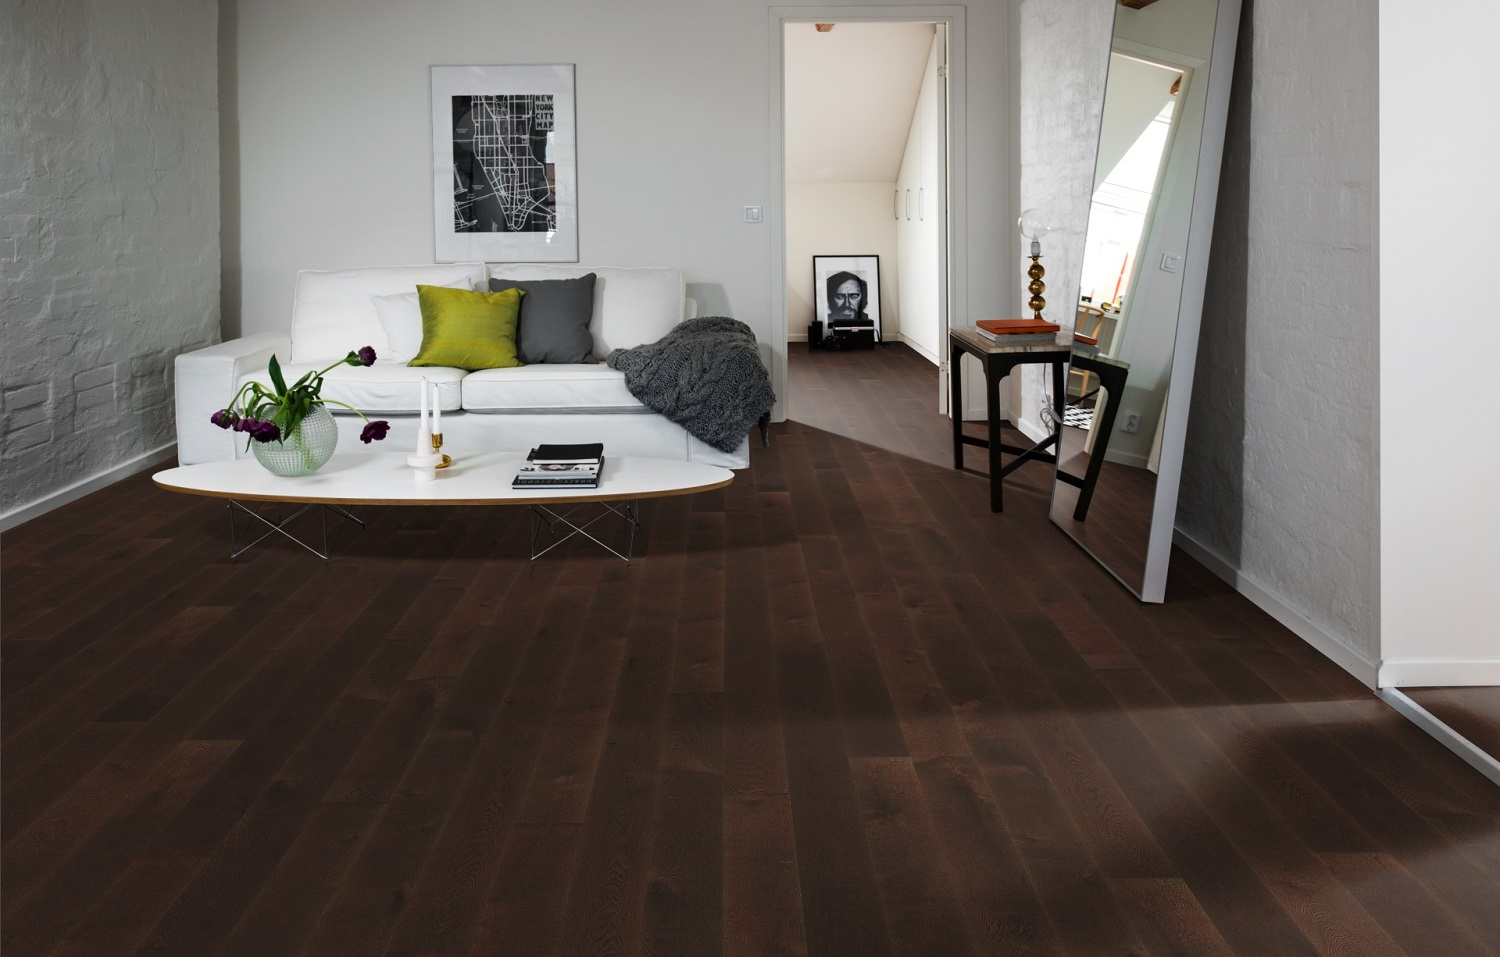 Kahrs canvas oak impasto 5 engineered hardwood flooring for Arredamento casa contemporaneo